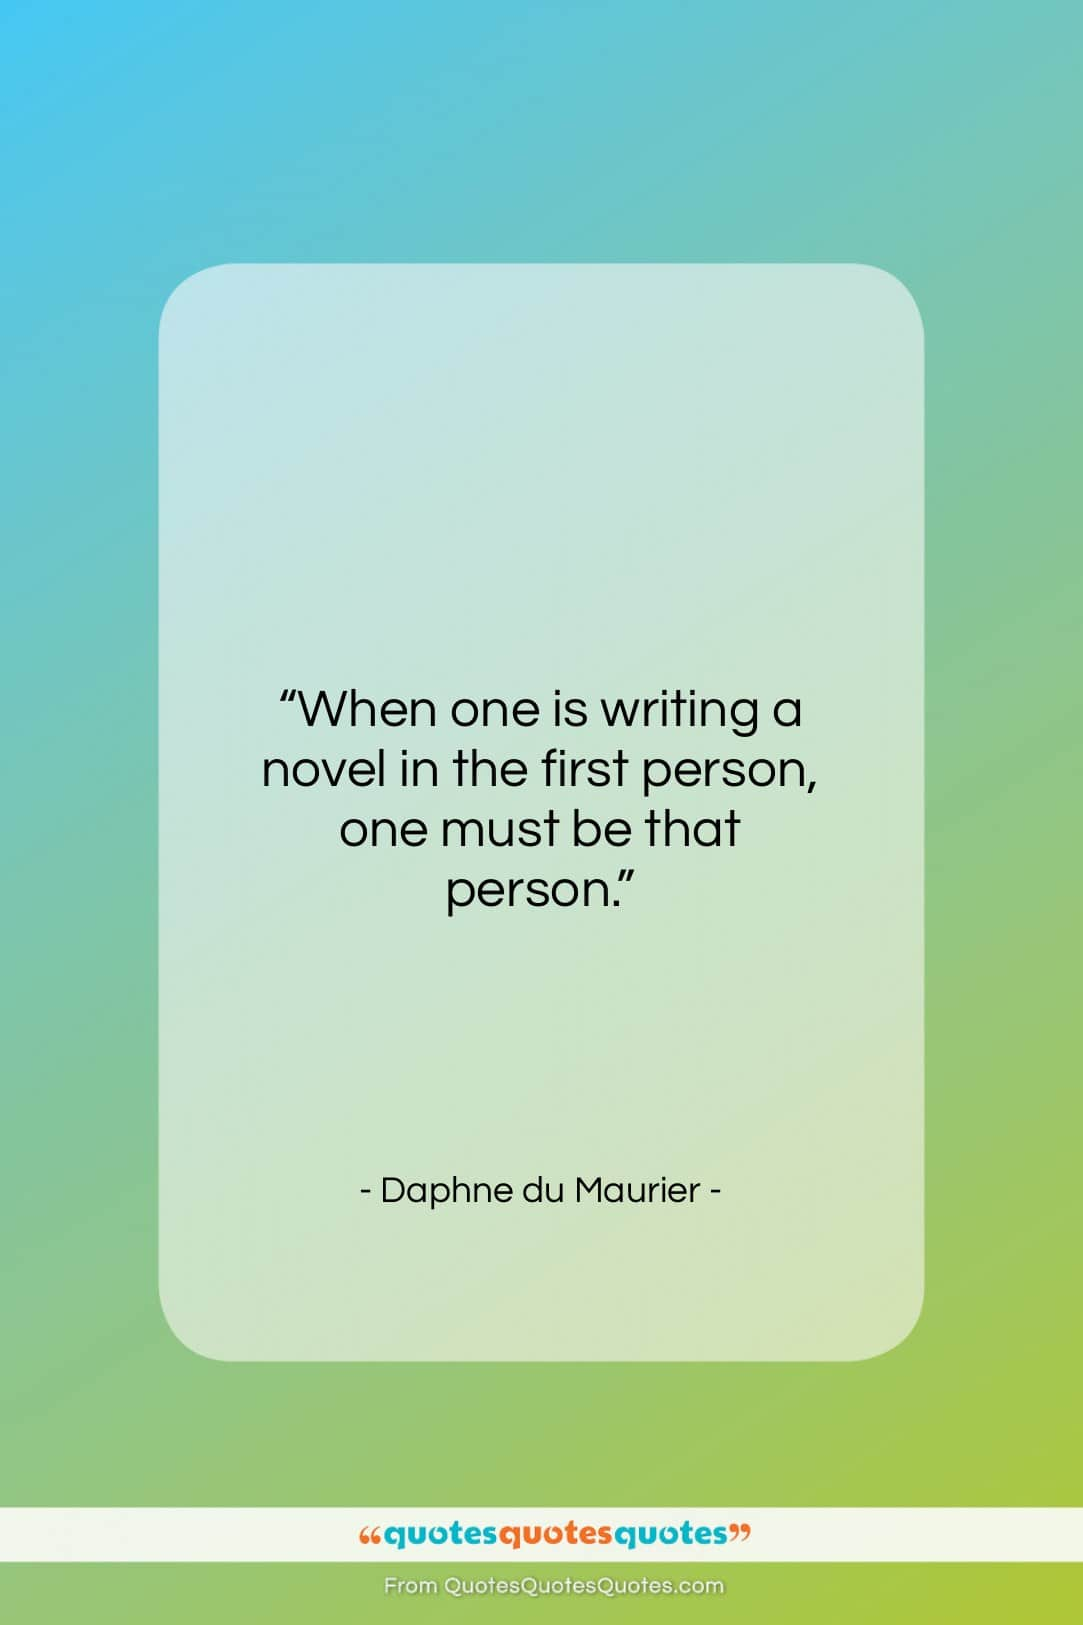 """Daphne du Maurier quote: """"When one is writing a novel in…""""- at QuotesQuotesQuotes.com"""